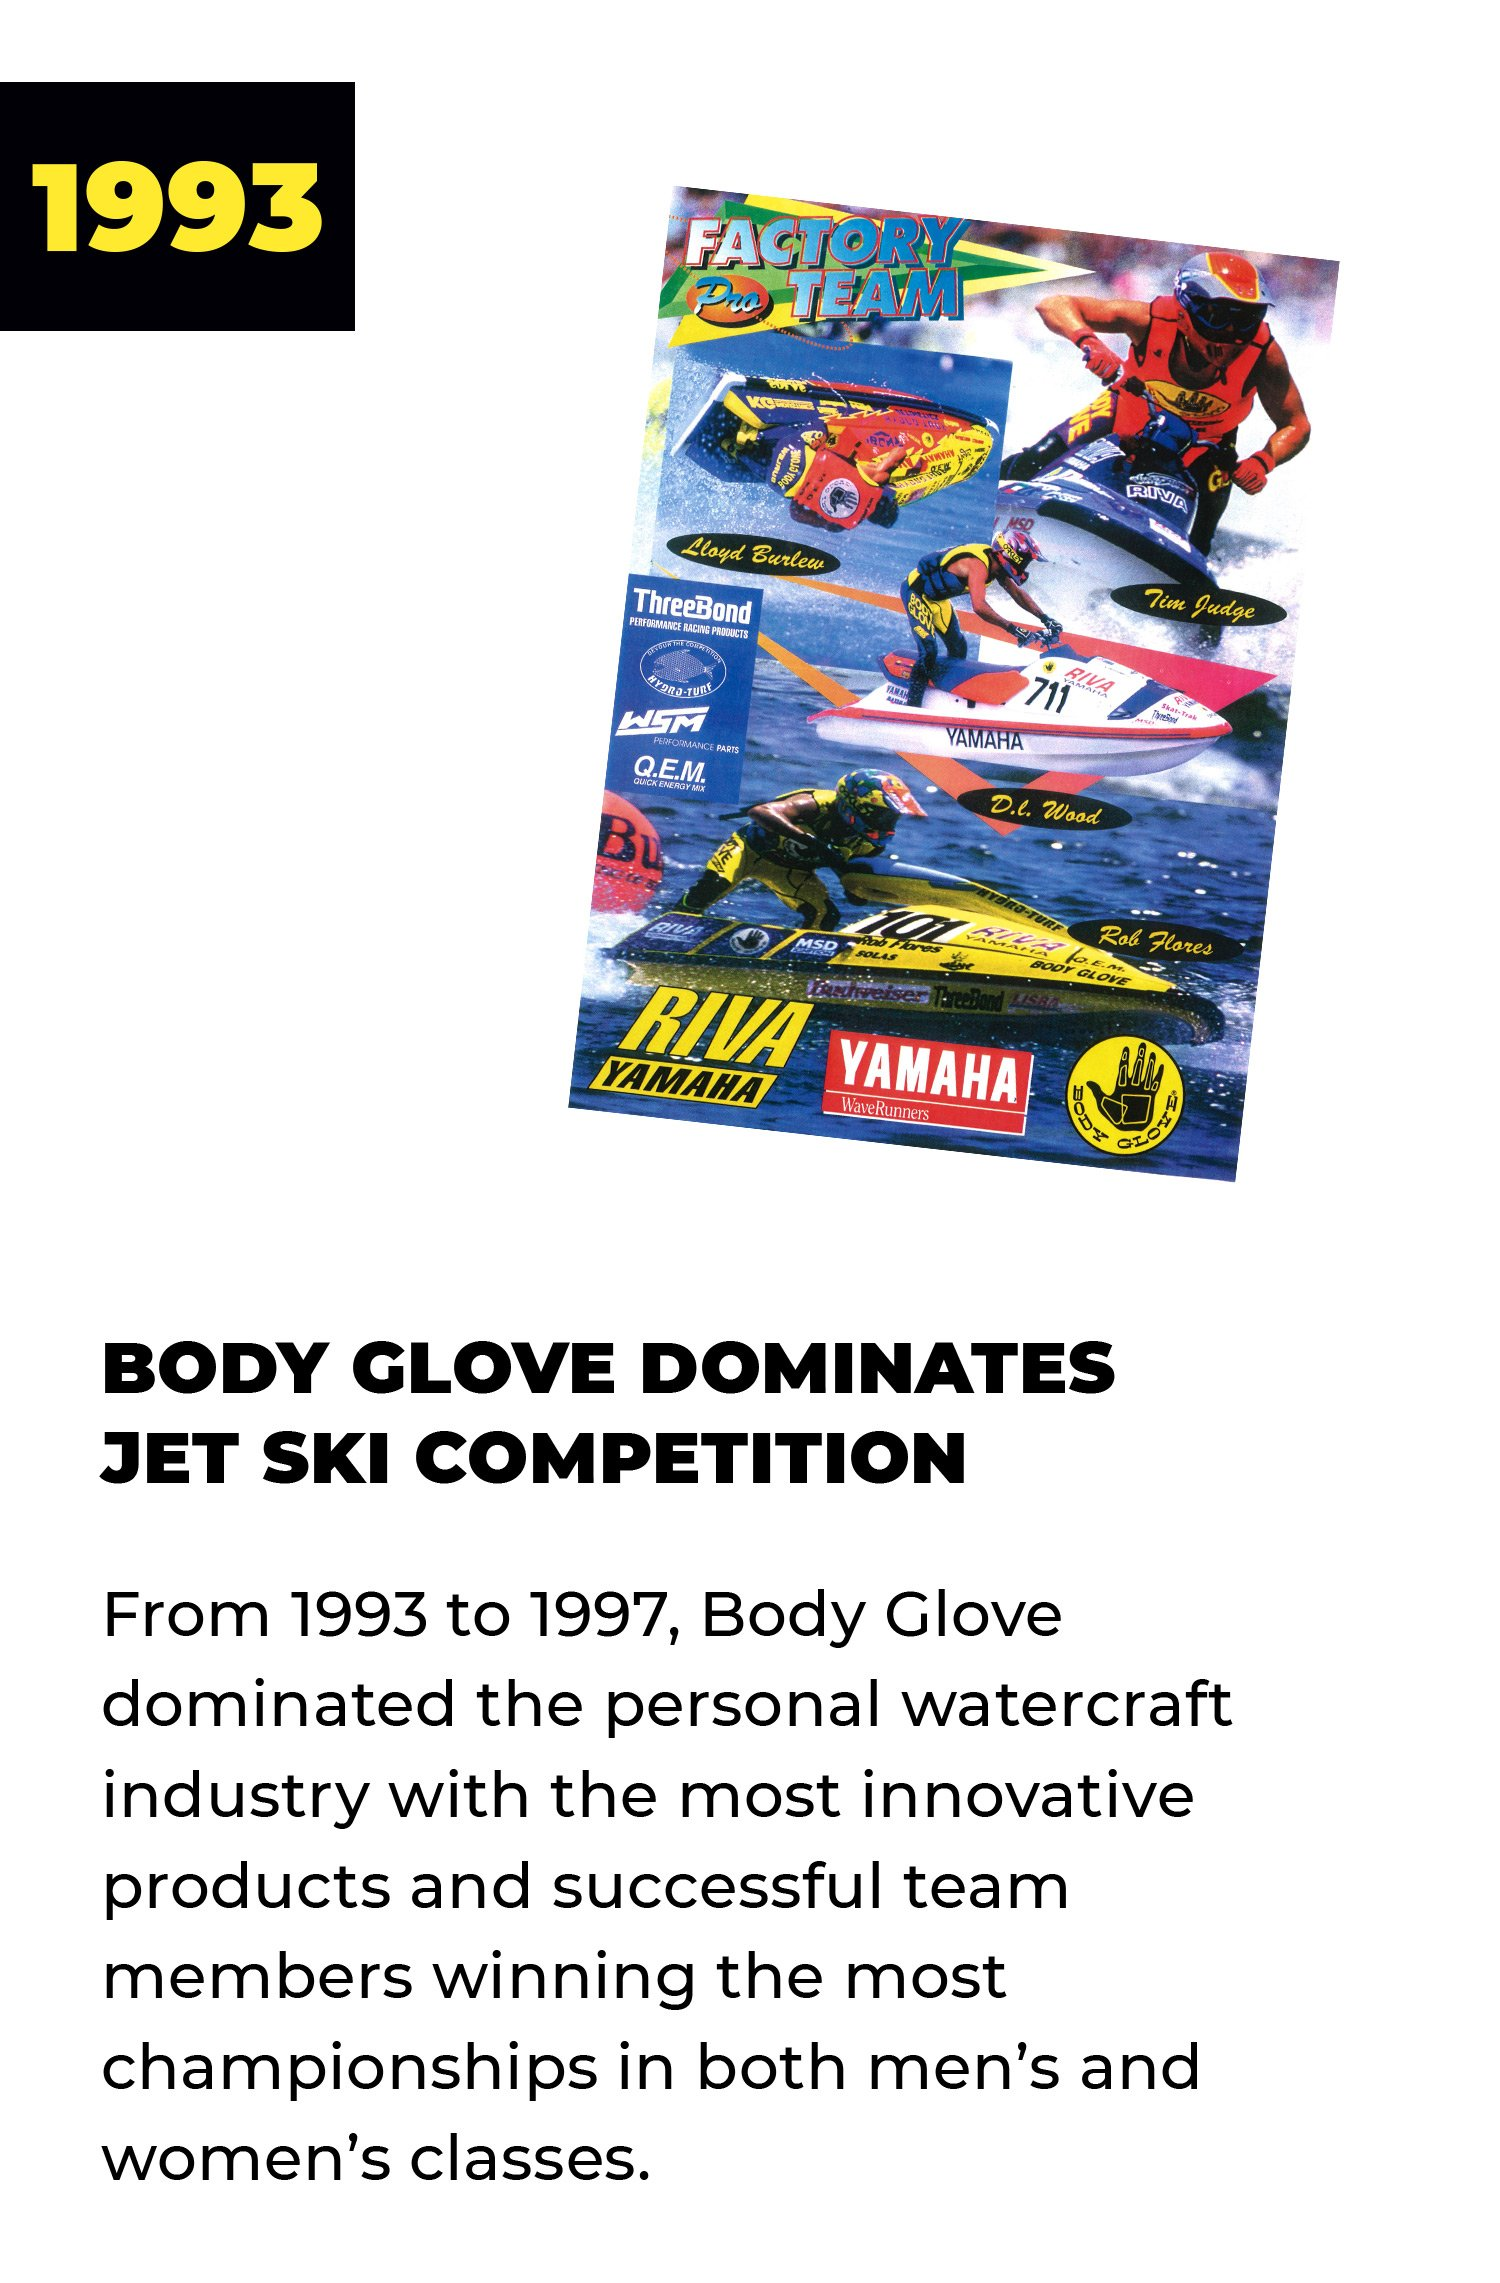 1993 | Body Glove Dominates Jet Ski Competition | Fro 1993 to 1997, Body Glove dominated the personal watercraft industry with the most innovative products and successful team members winning the most championships in both men's and women's classes.